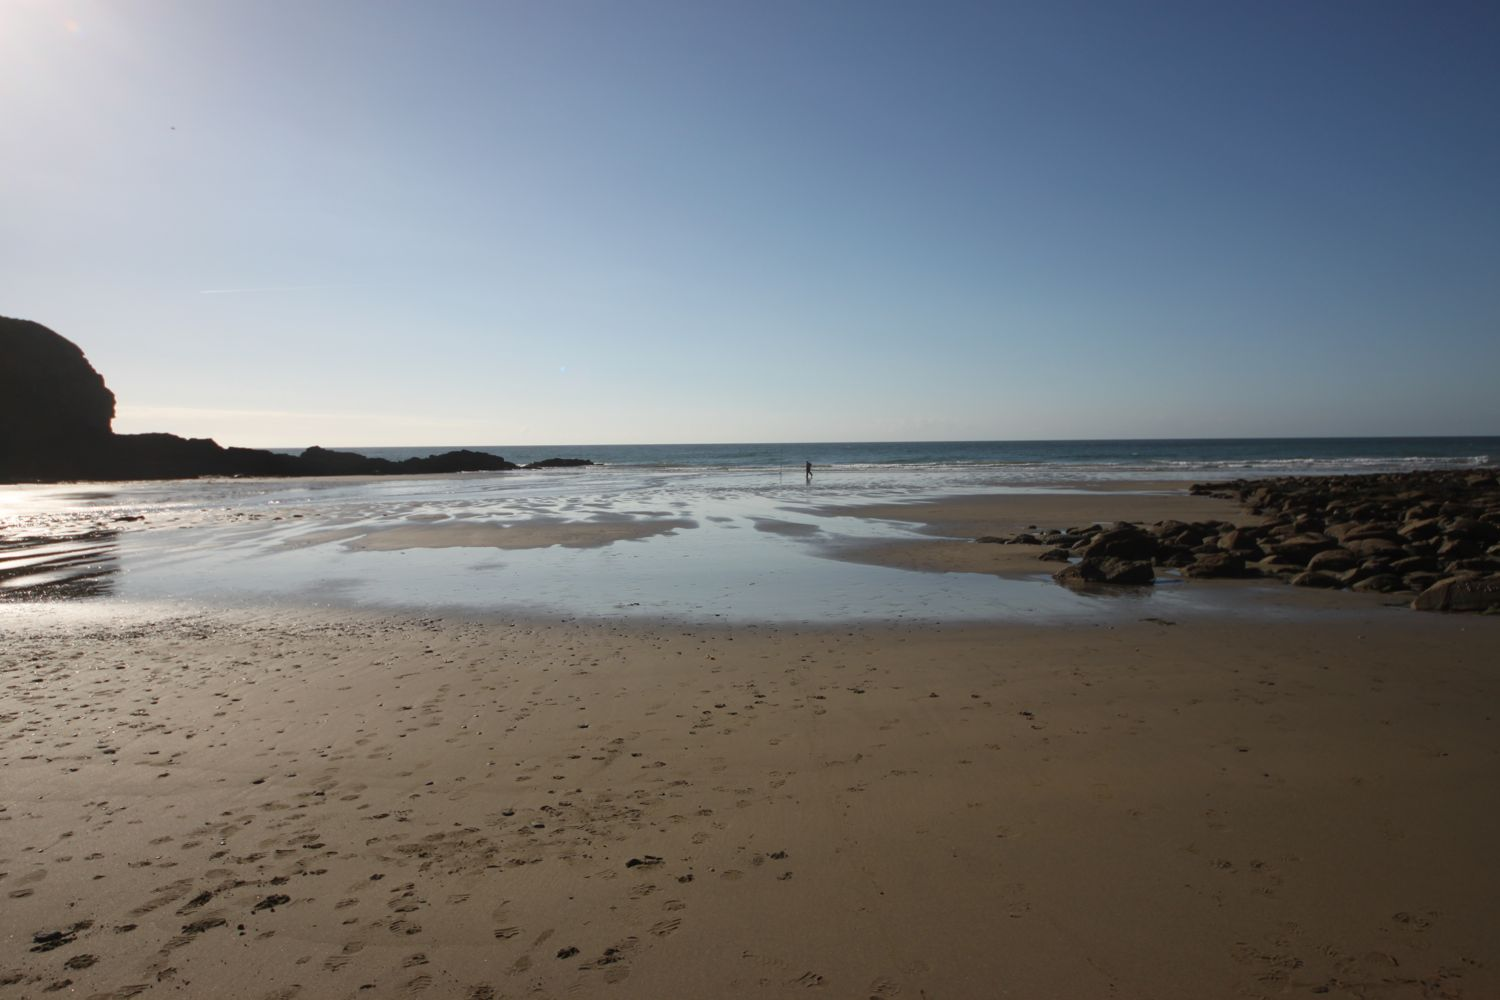 the beach at east portholland